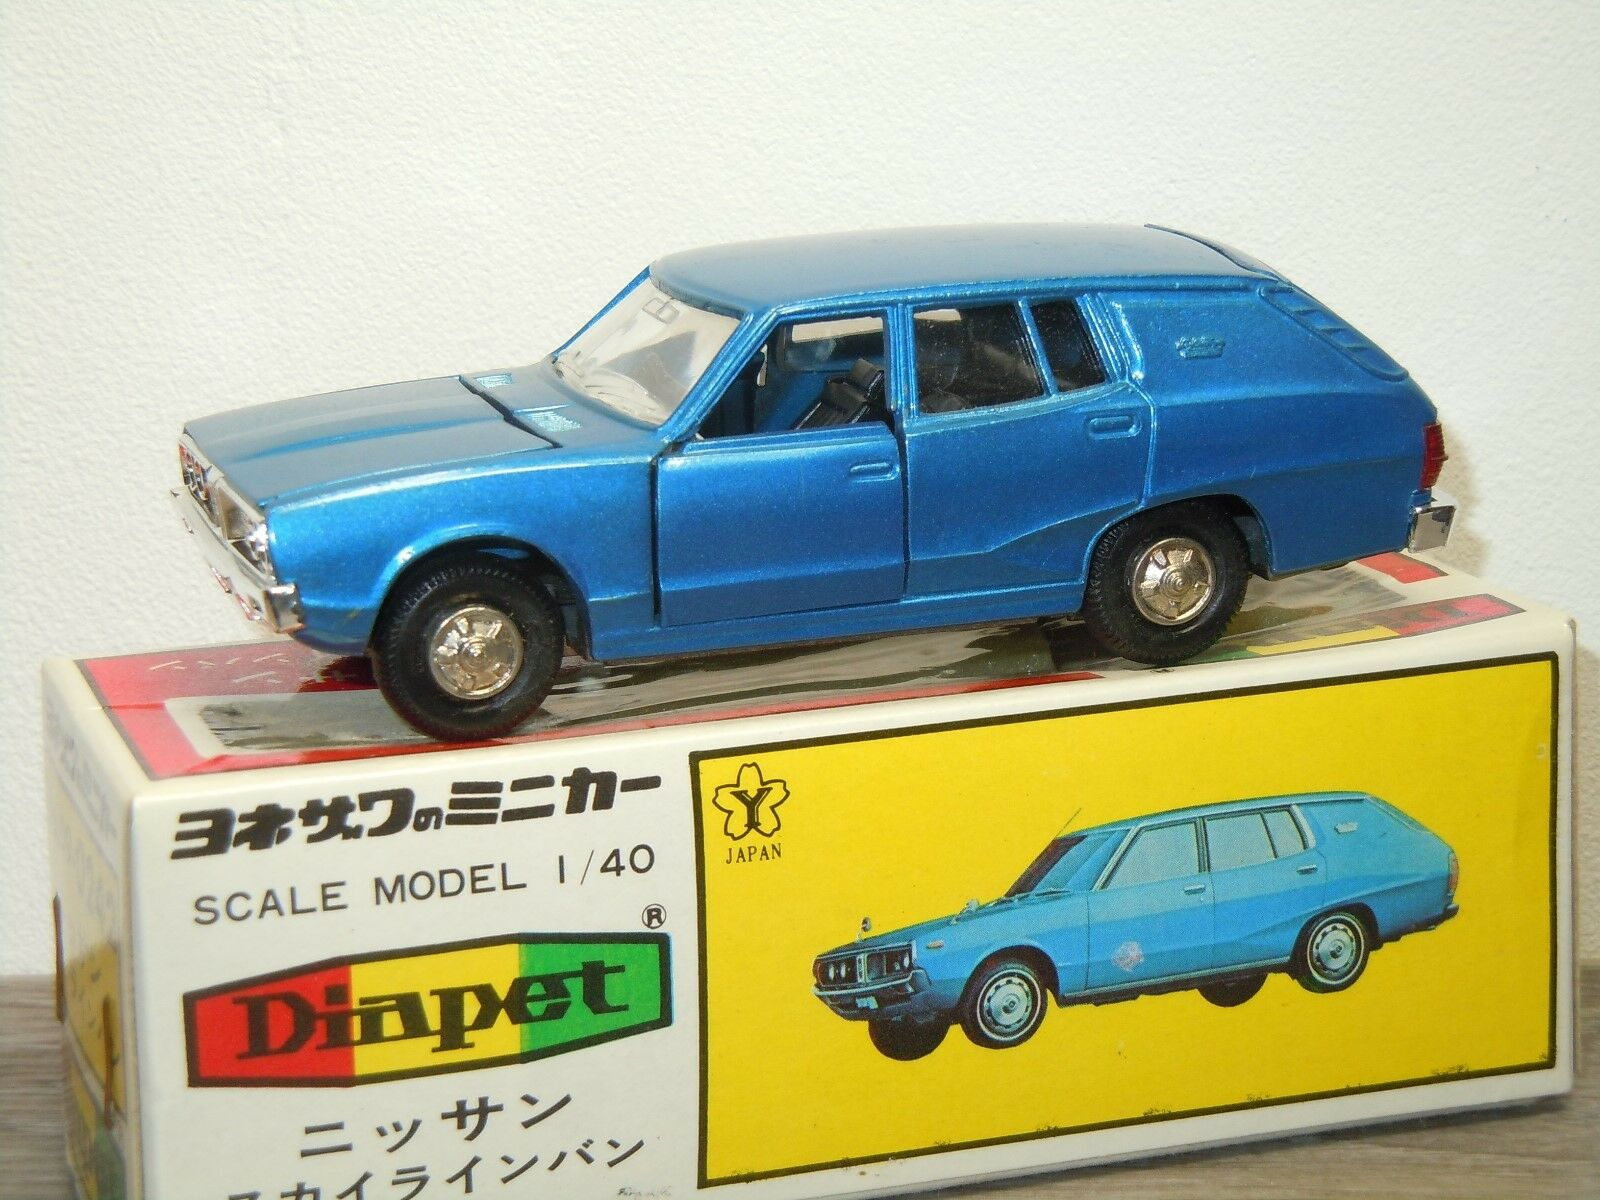 Nissan Skyline Van - Diapet Yoneazawa Toys 0242 Japan 1:40 in Box *33030